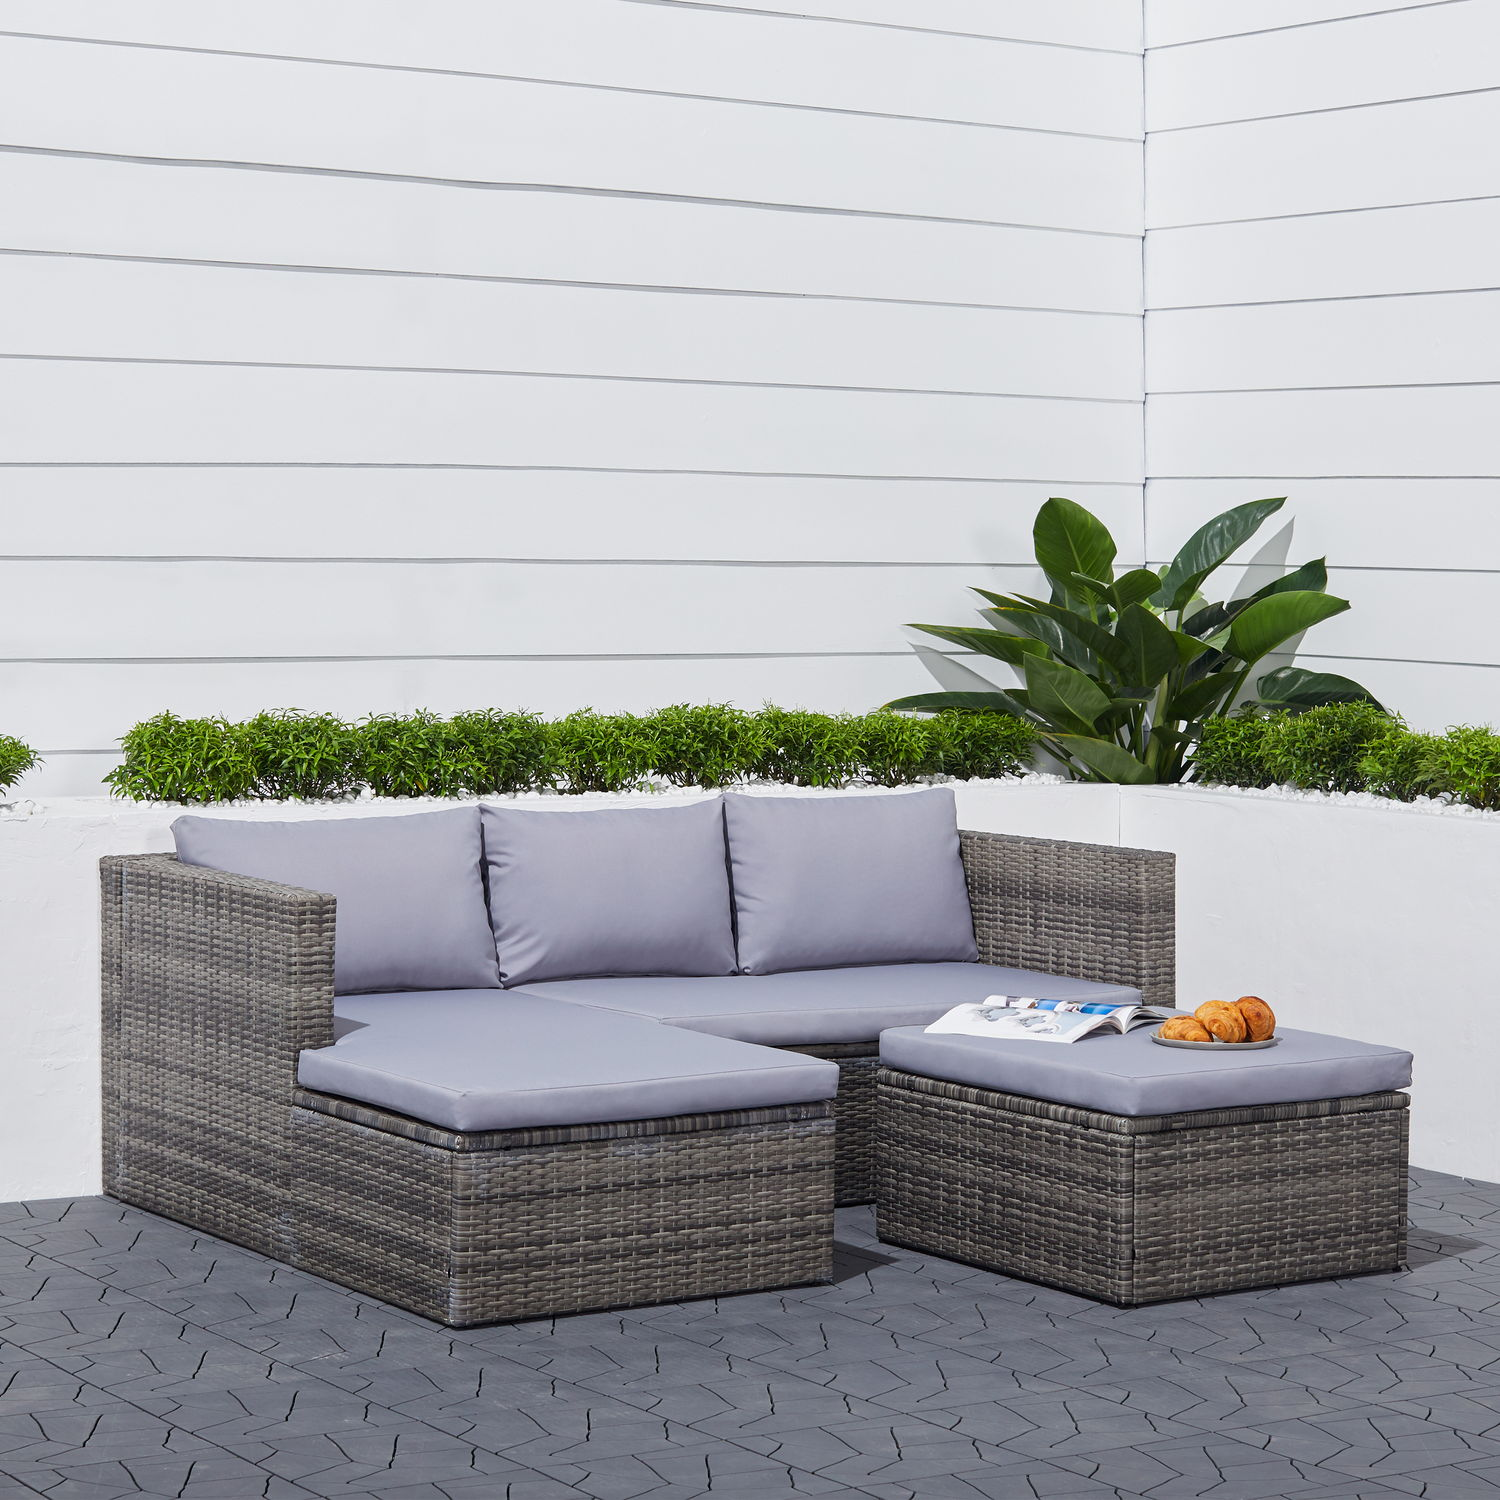 Daytona 3-piece Vintage Outdoor Cushioned Wicker Corner Sofa in Light Grey with Footstool